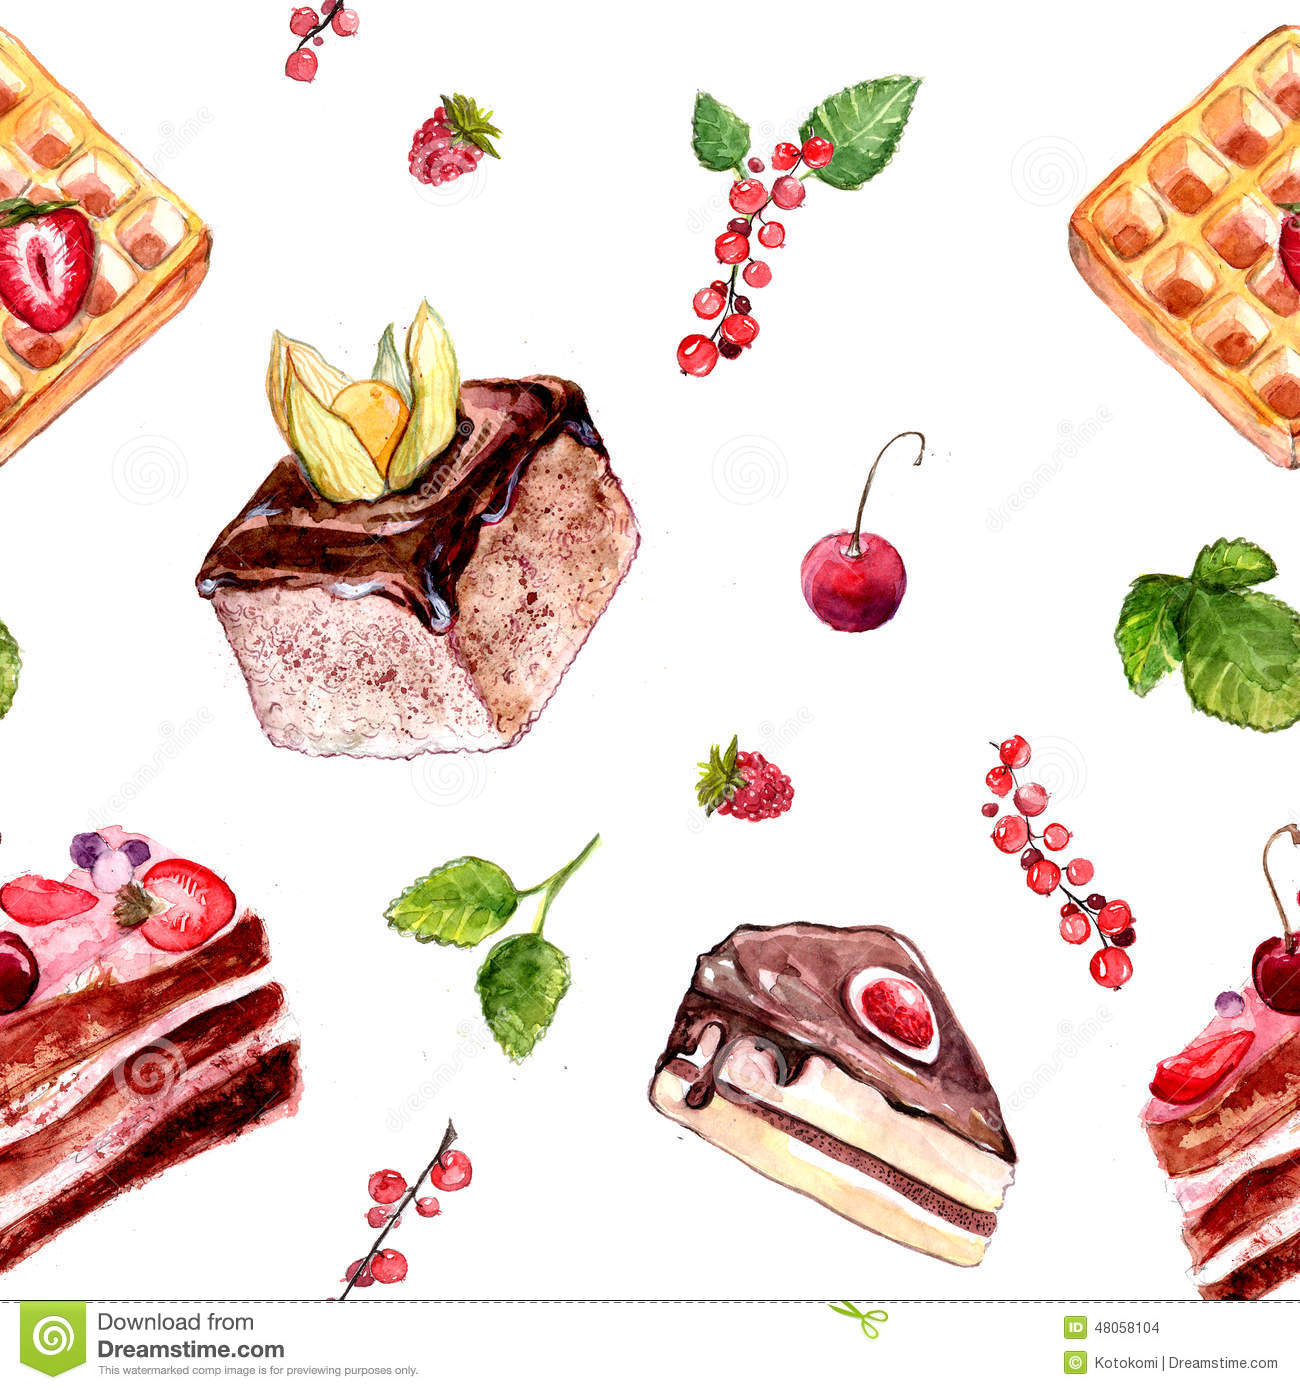 Watercolor Desserts Seamless Pattern With Cakes Red Currant And